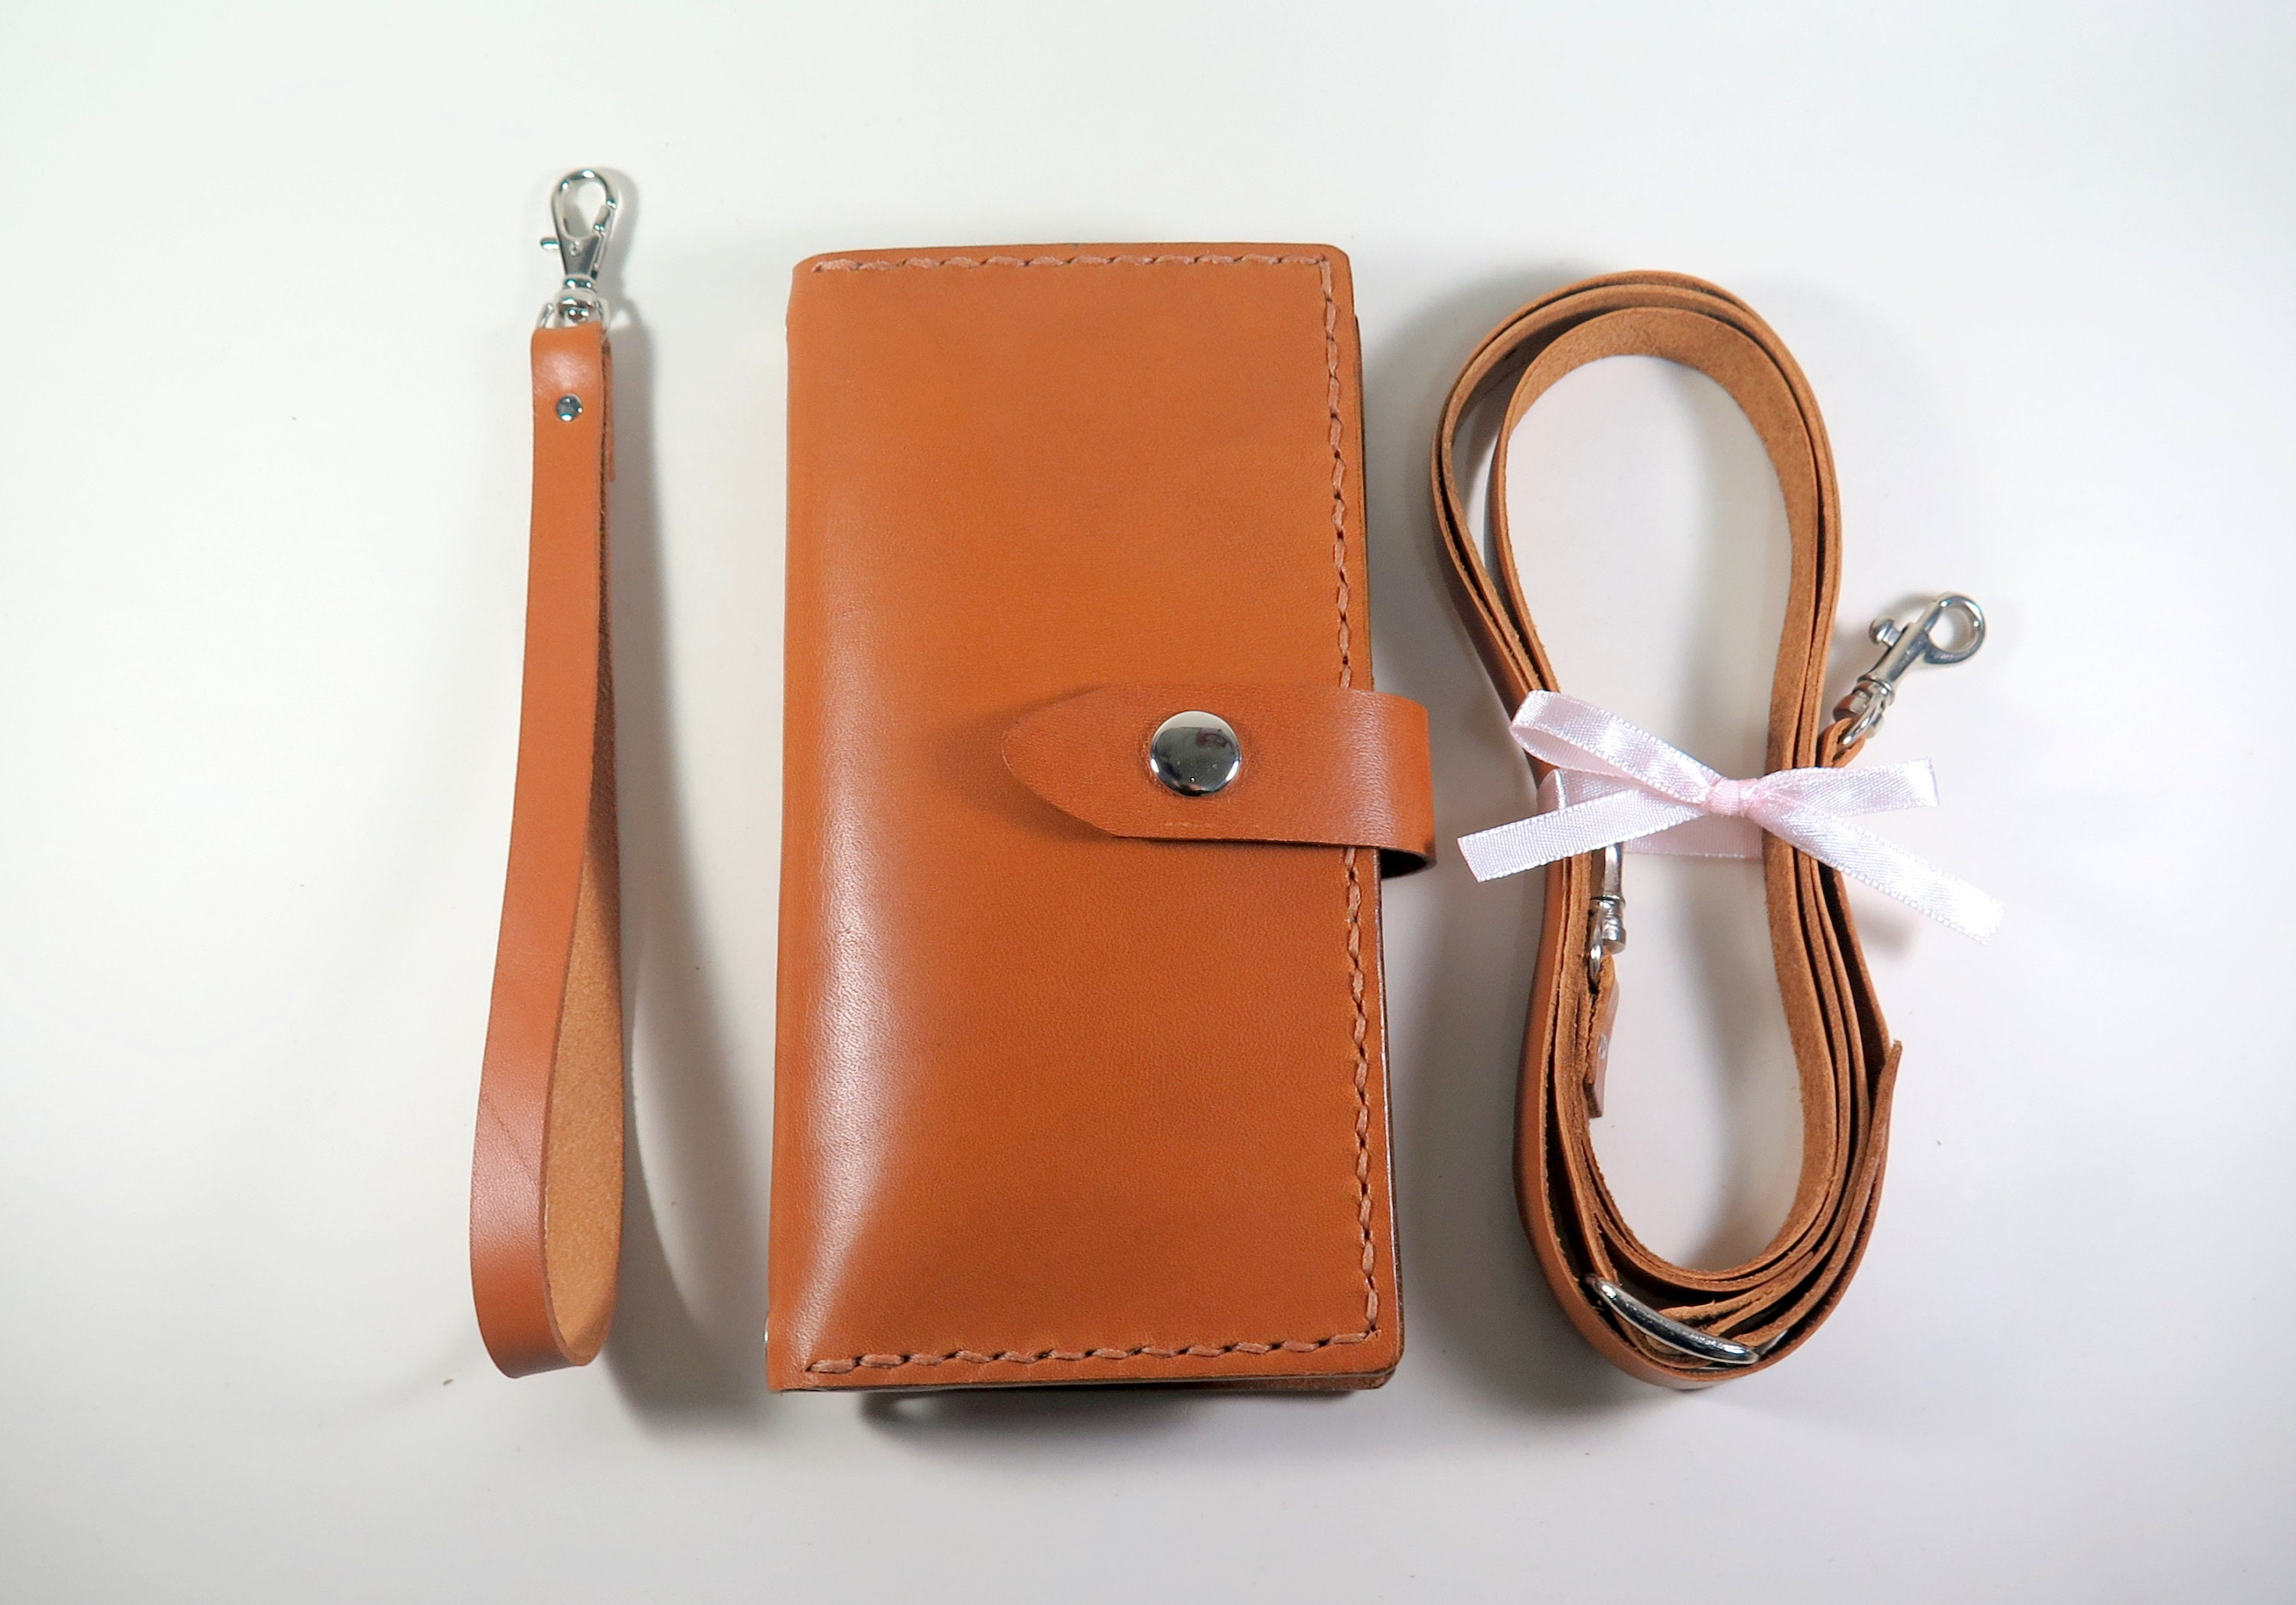 the latest 380f0 02fc4 Personalized iPhone 8 Plus Purse iPhone 8 Plus Cross Body Bag Clutch  Handmade Italian Leather iPhone 8 Plus Wallet Crossbody Strap + 6 Slots